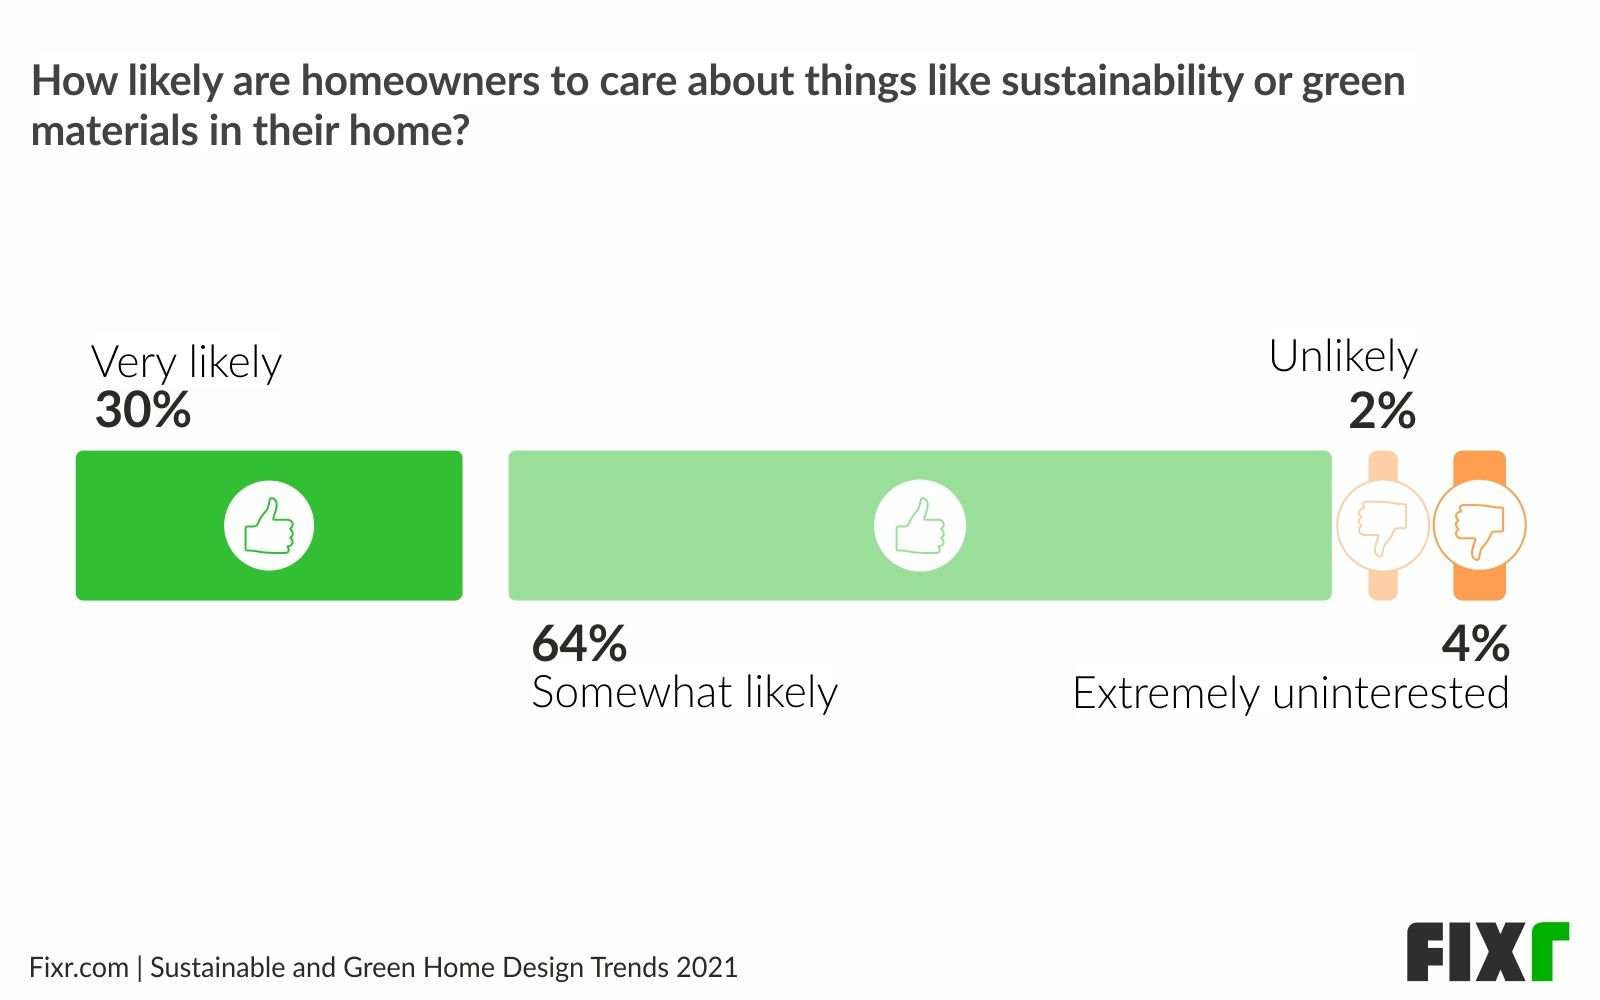 Homeowners are Somewhat Likely to Care About Green Features in their Homes in 2021